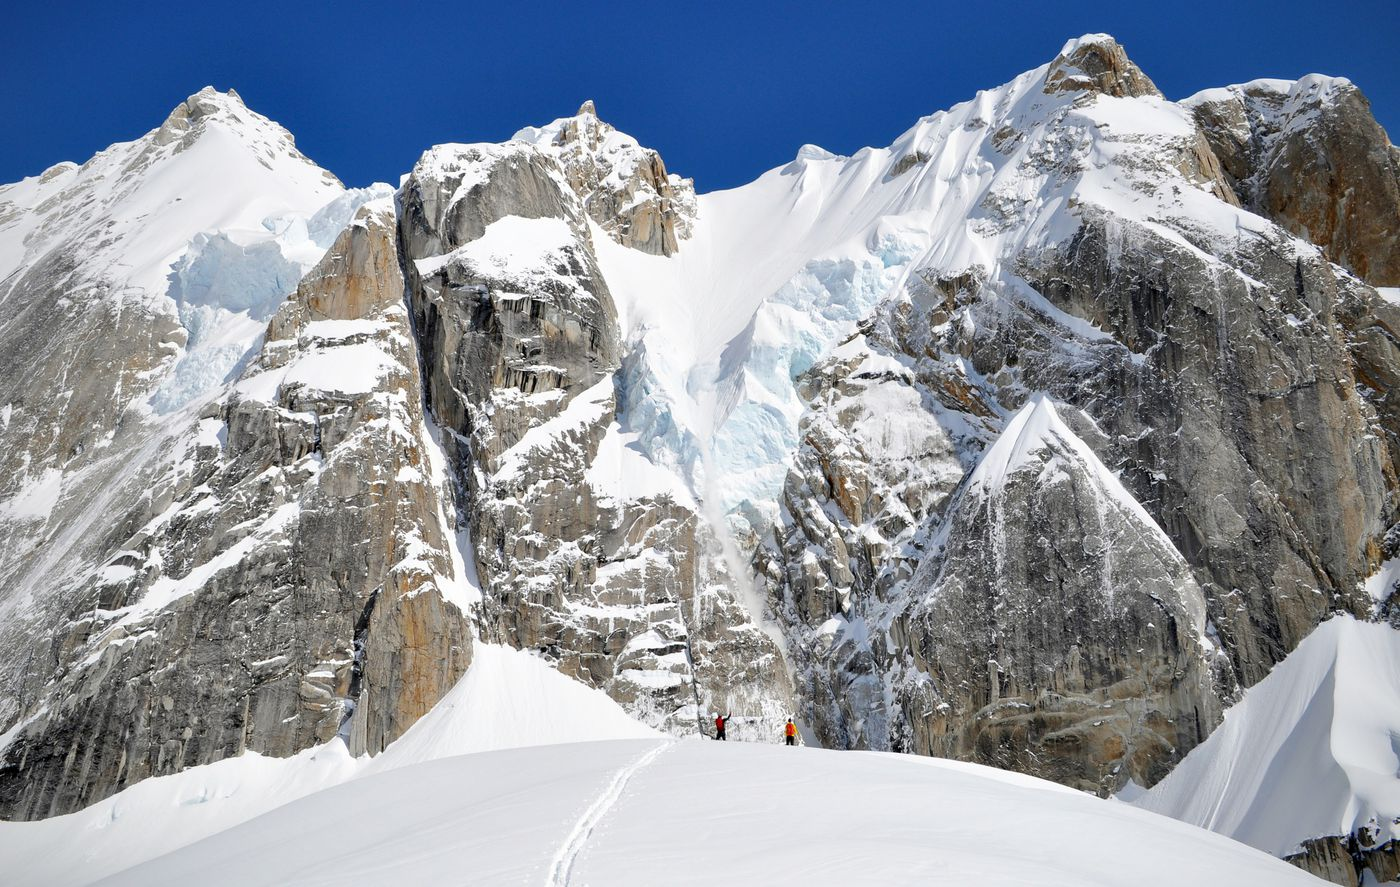 Matt Cress, left, and Steven Claggett watch a natural avalanche come down from the seracs beneath the ridge line that links Bear Tooth and Eye Tooth. (Vicky Ho / ADN)